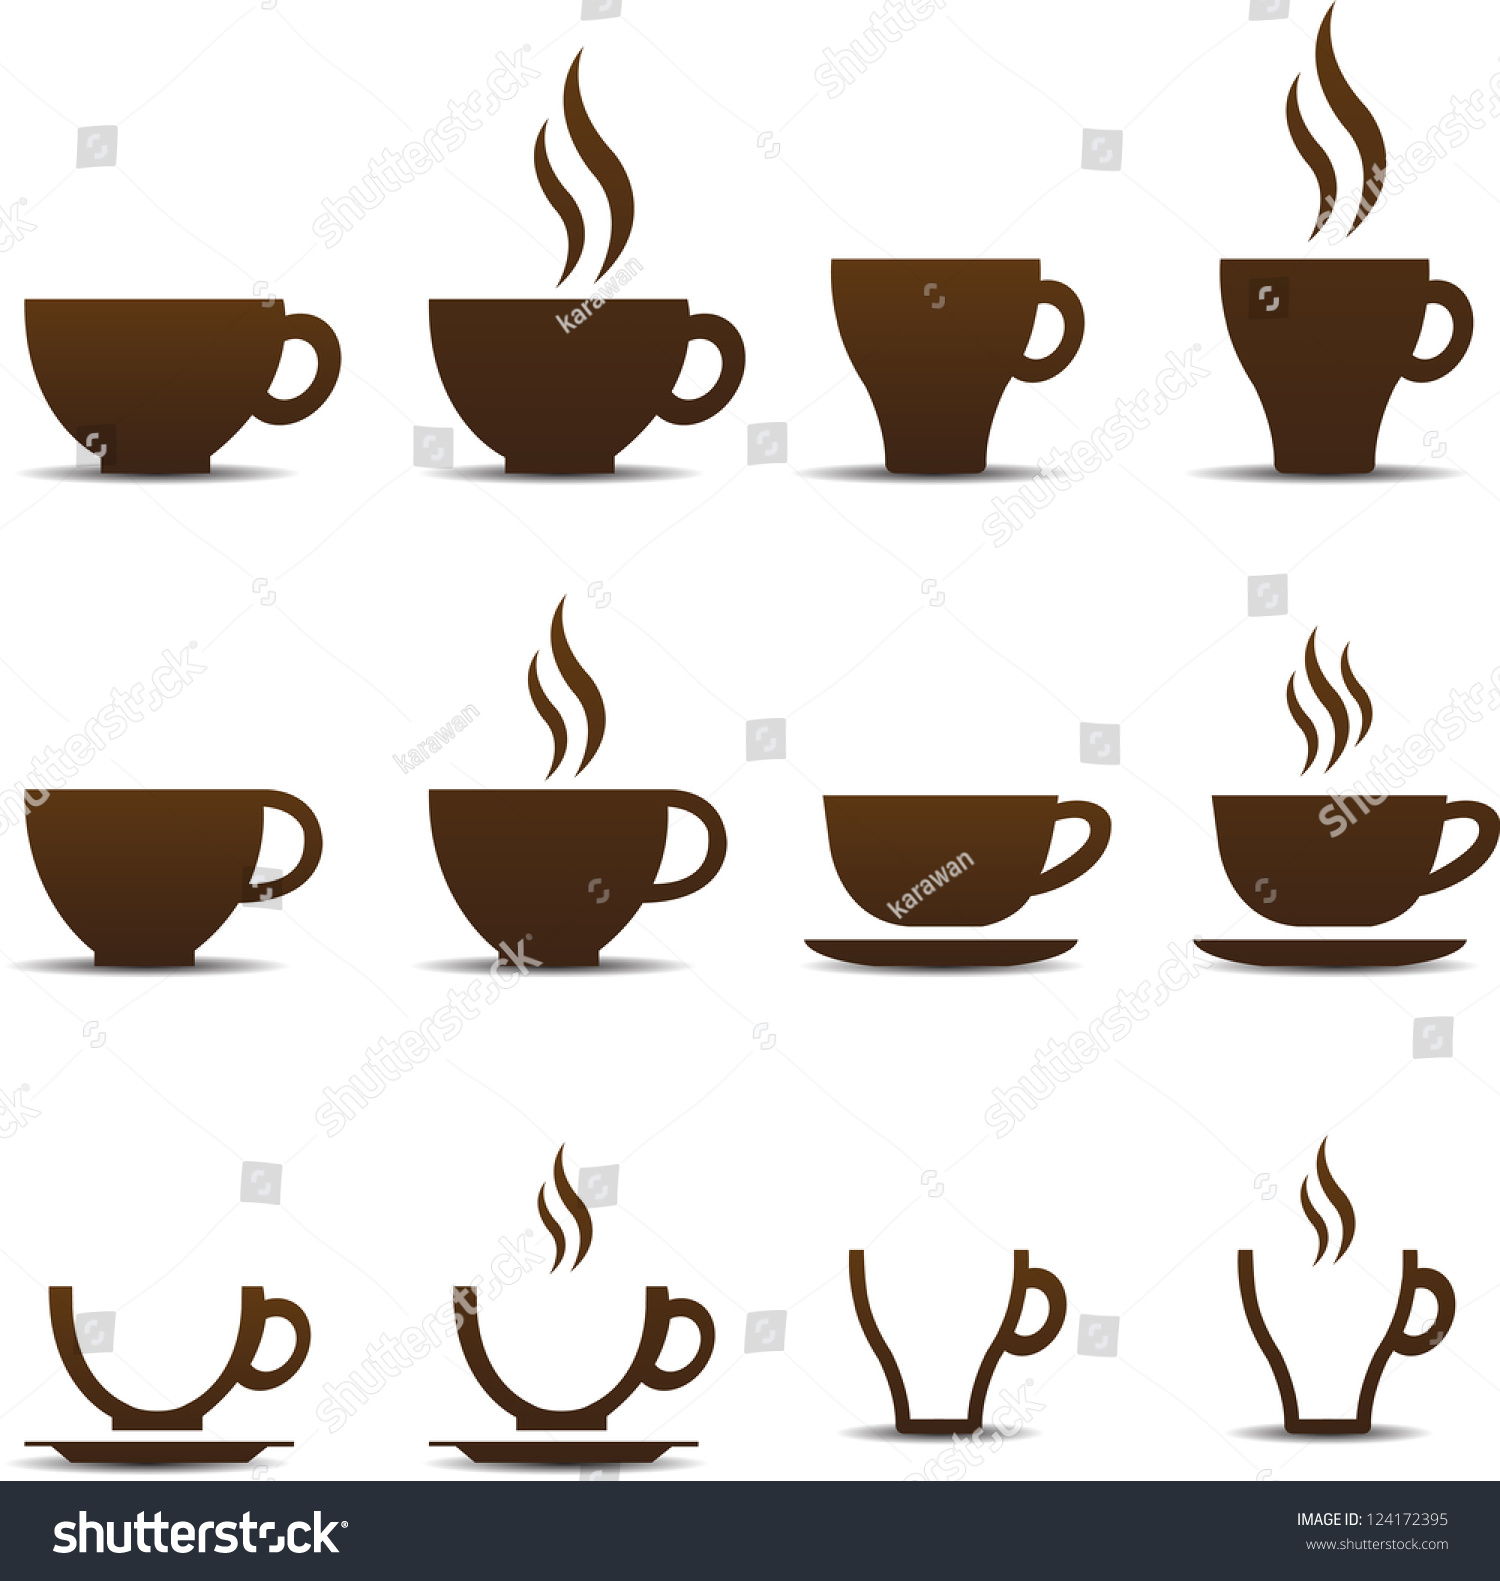 Coffee cup vector free - Coffee Cup Vector